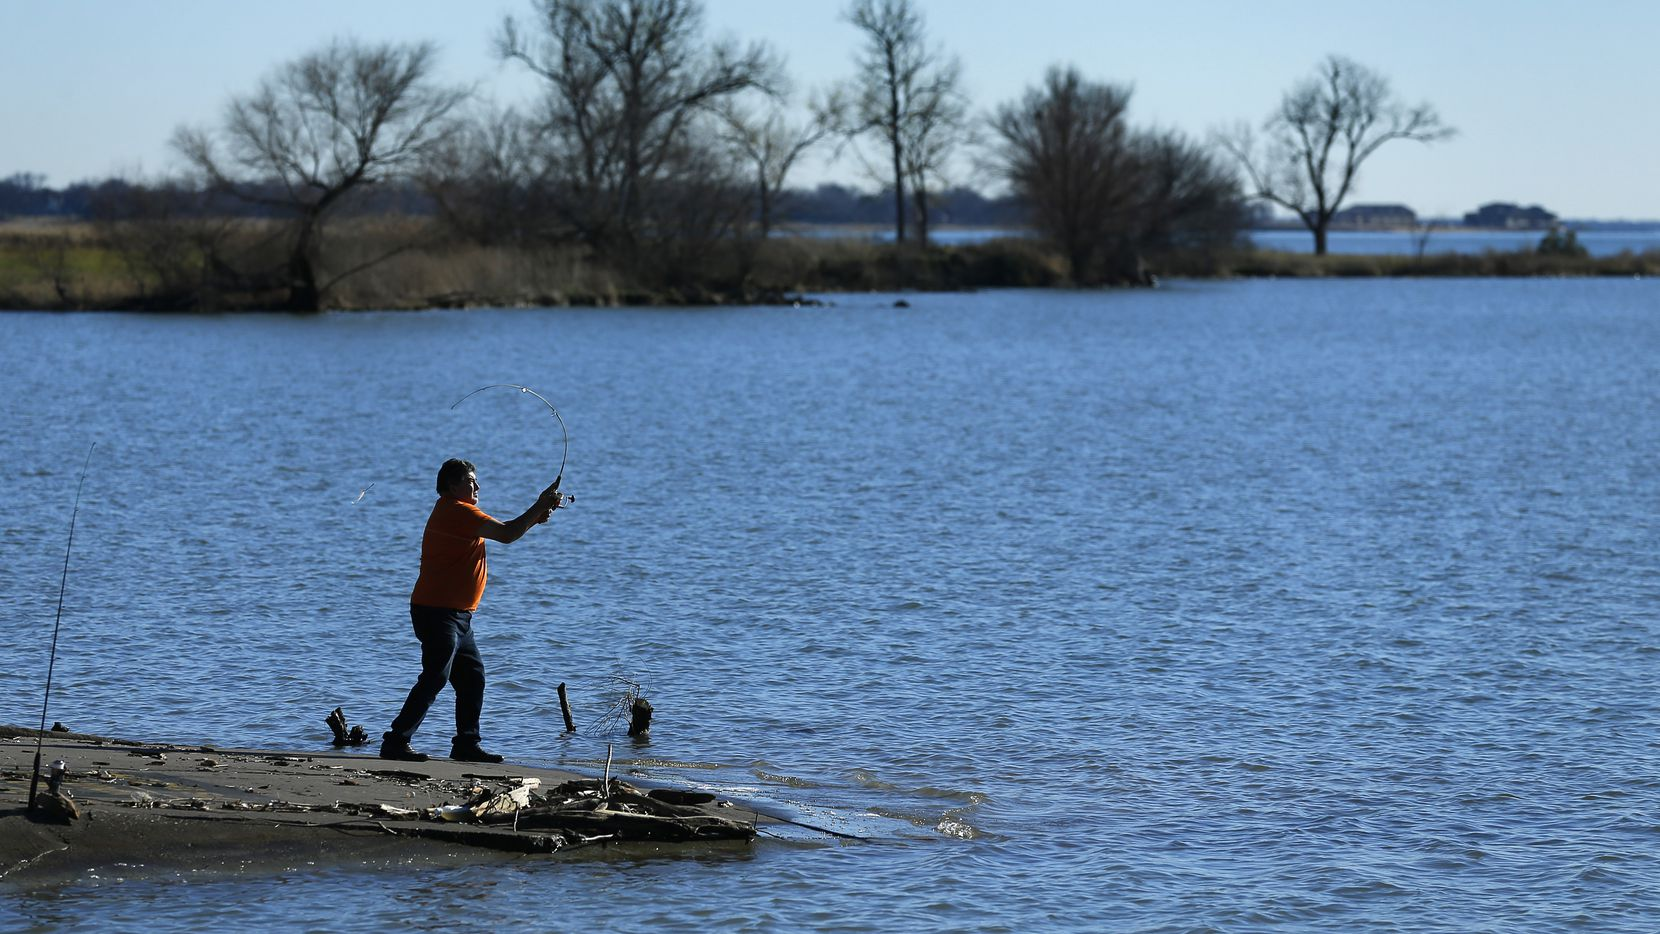 Fisherman Jose J Torres of Dallas cast his line near the Bayside development under construction on the Lake Ray Hubbard peninsula south of Interstate 30 in Rowlett, Texas, Friday, January 4, 2019. Mayor Tammy Dana-Bashian spoke of the city's lawsuit filed against Bayside Land Partners LLC and Bayside District Partners LLC over what they say is a default in development agreements after months of unsuccessful discussions about the 262-acre Bayside development, which includes Crystal Lagoon.